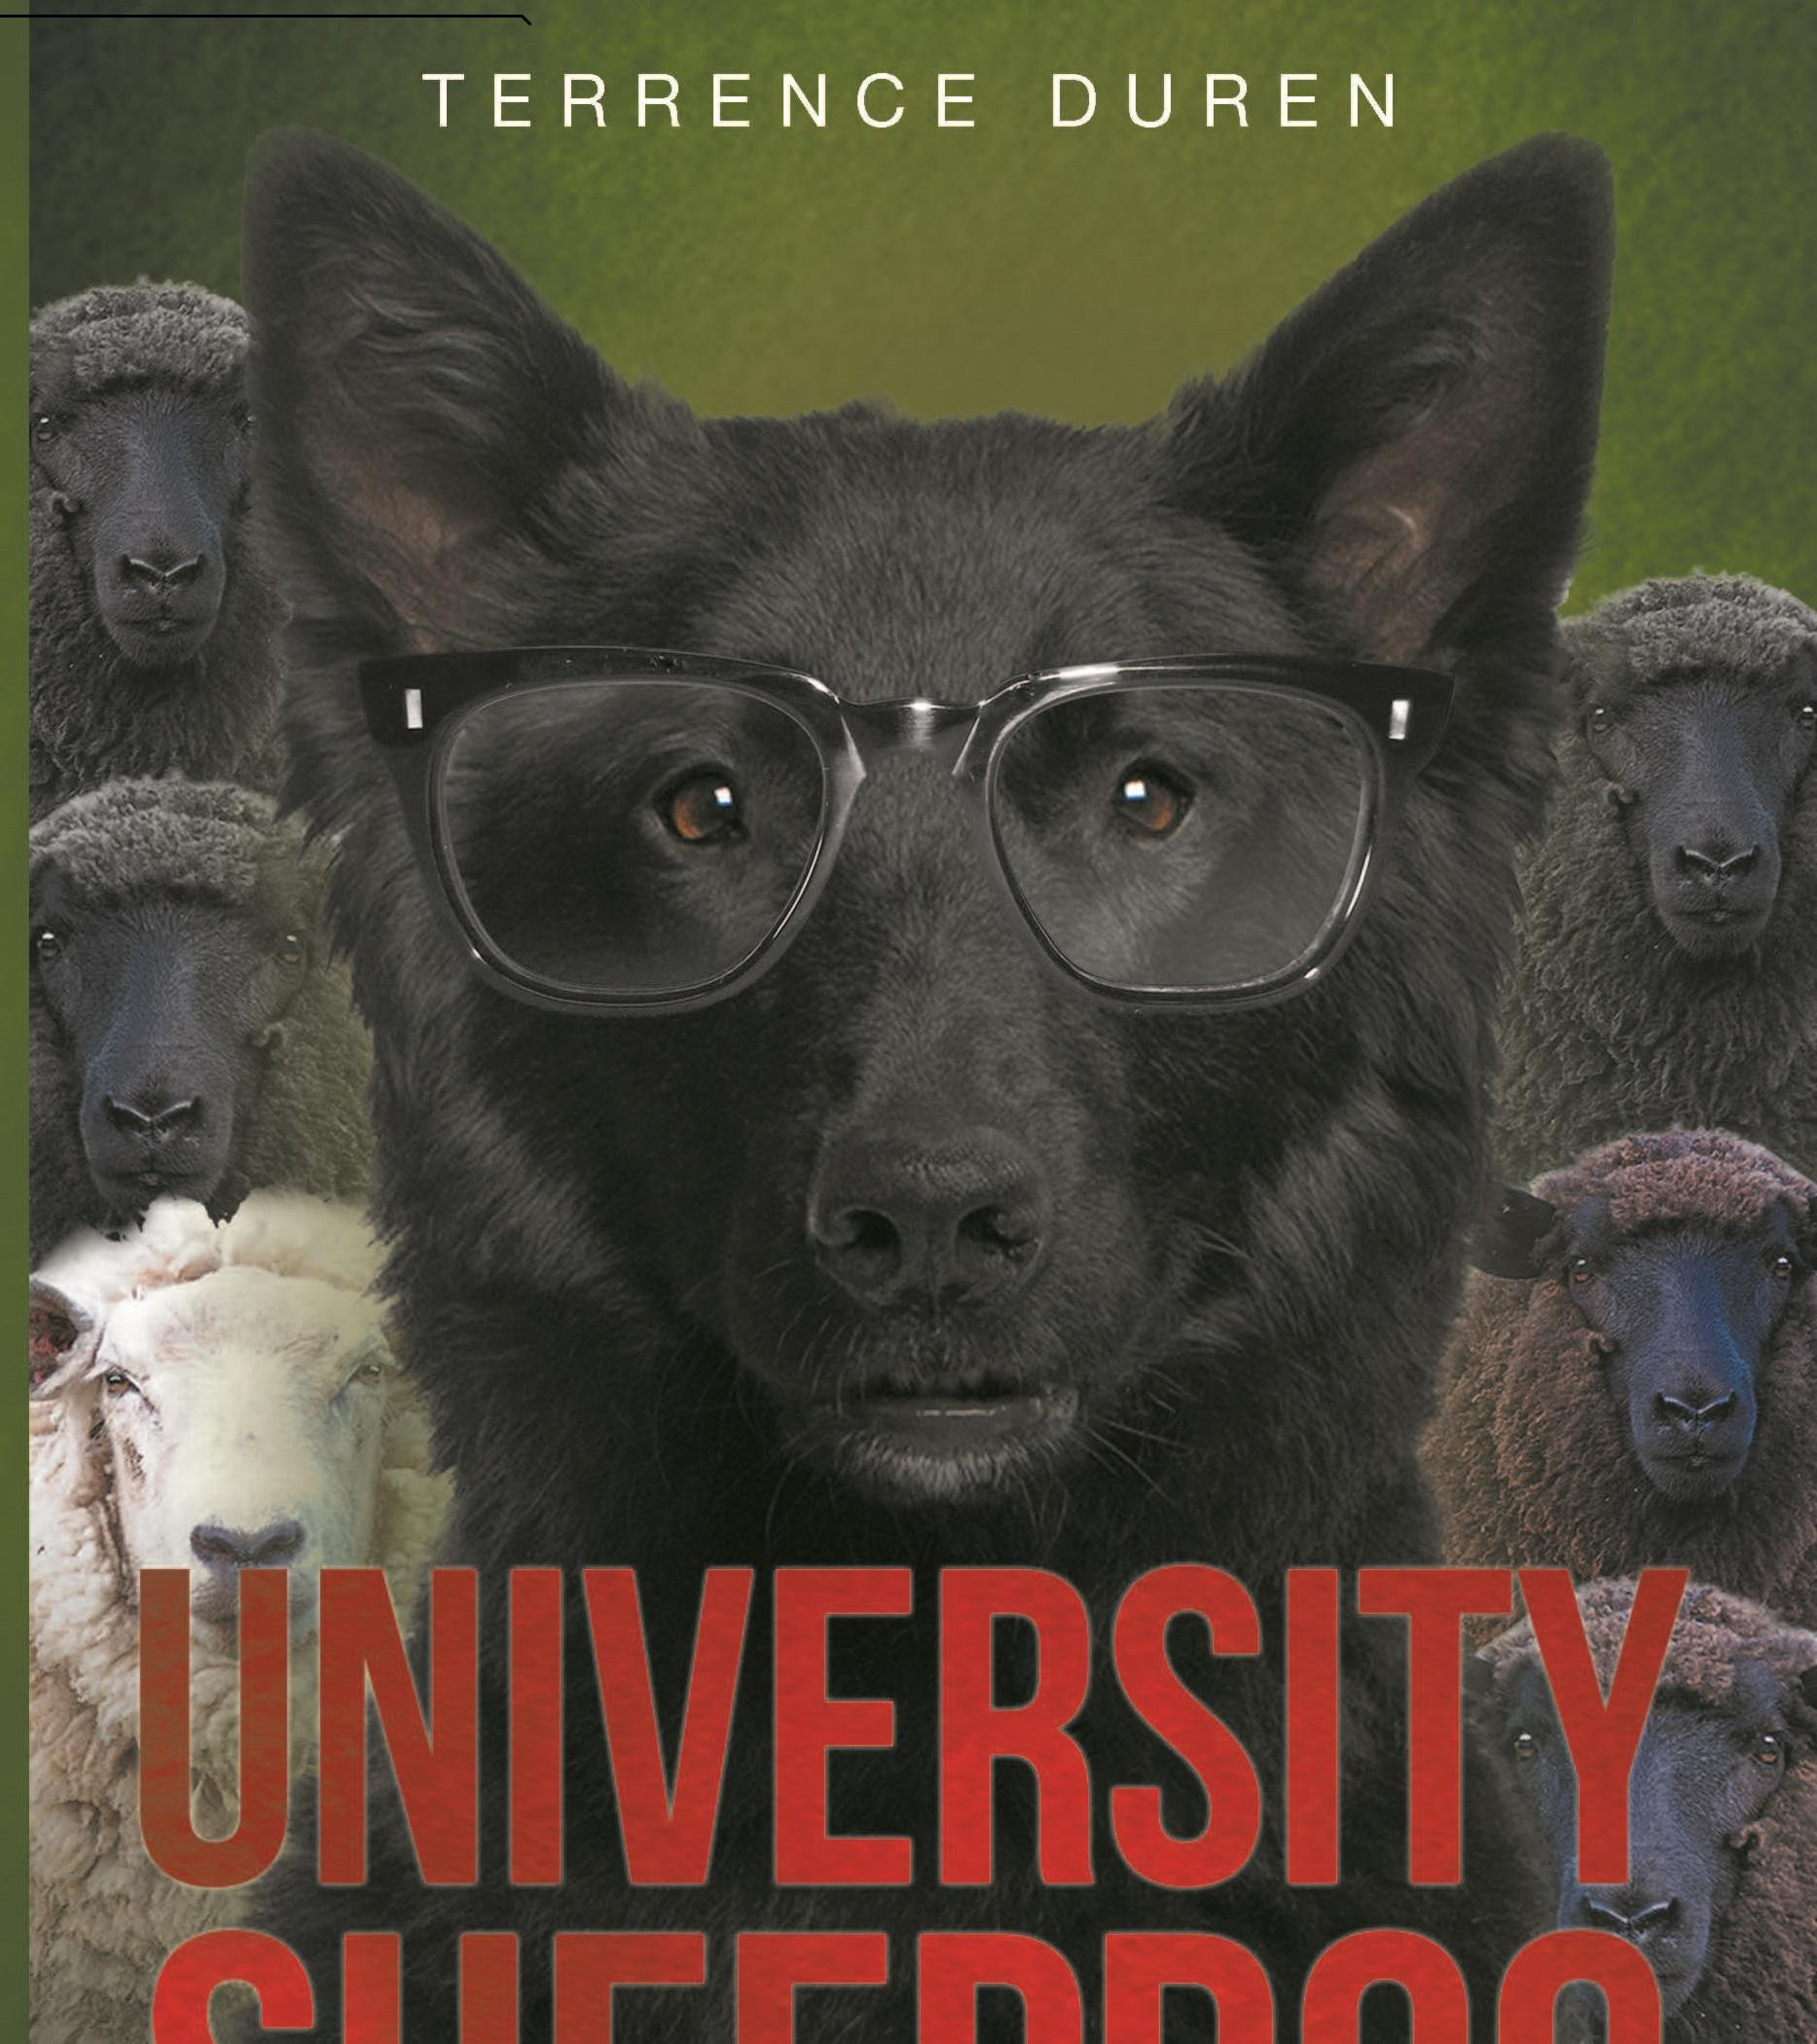 University Sheepdog in Westwood CA by Terrence Duren